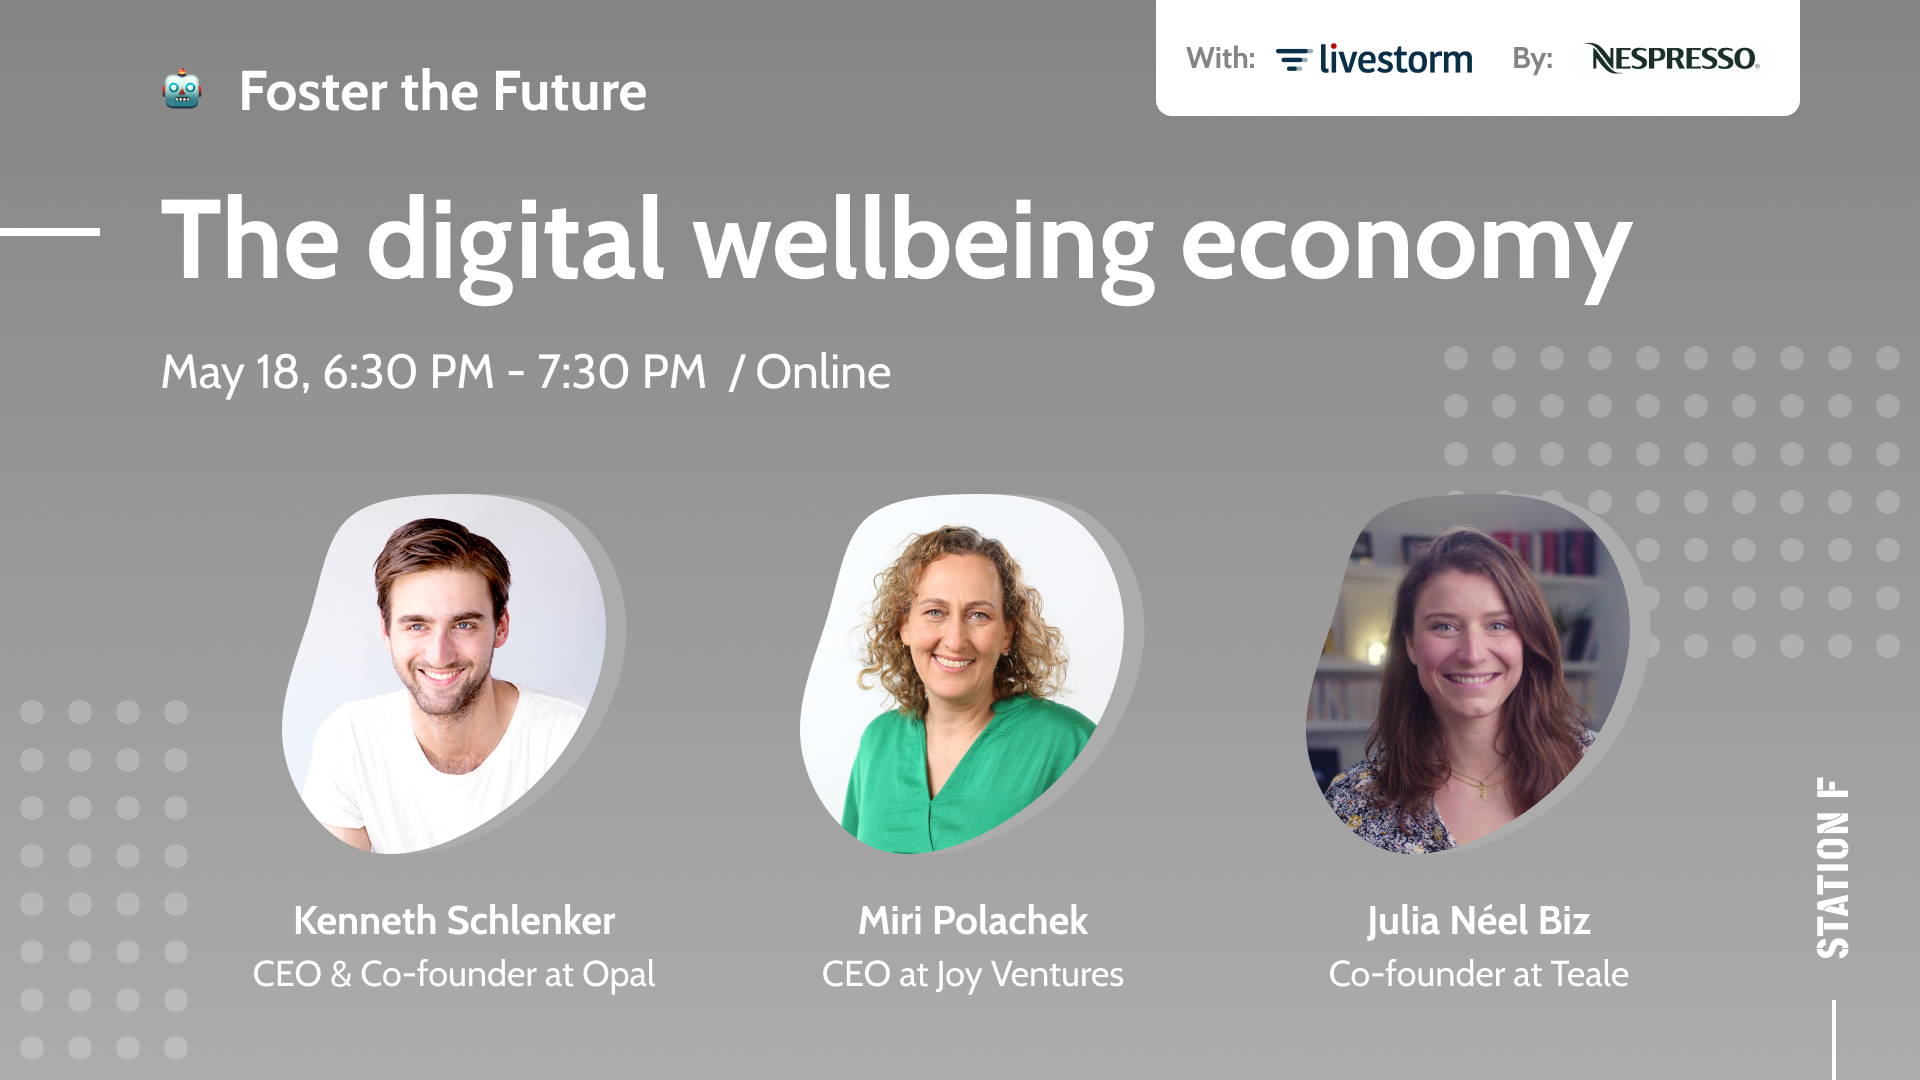 Thumbnail for event The digital wellbeing economy